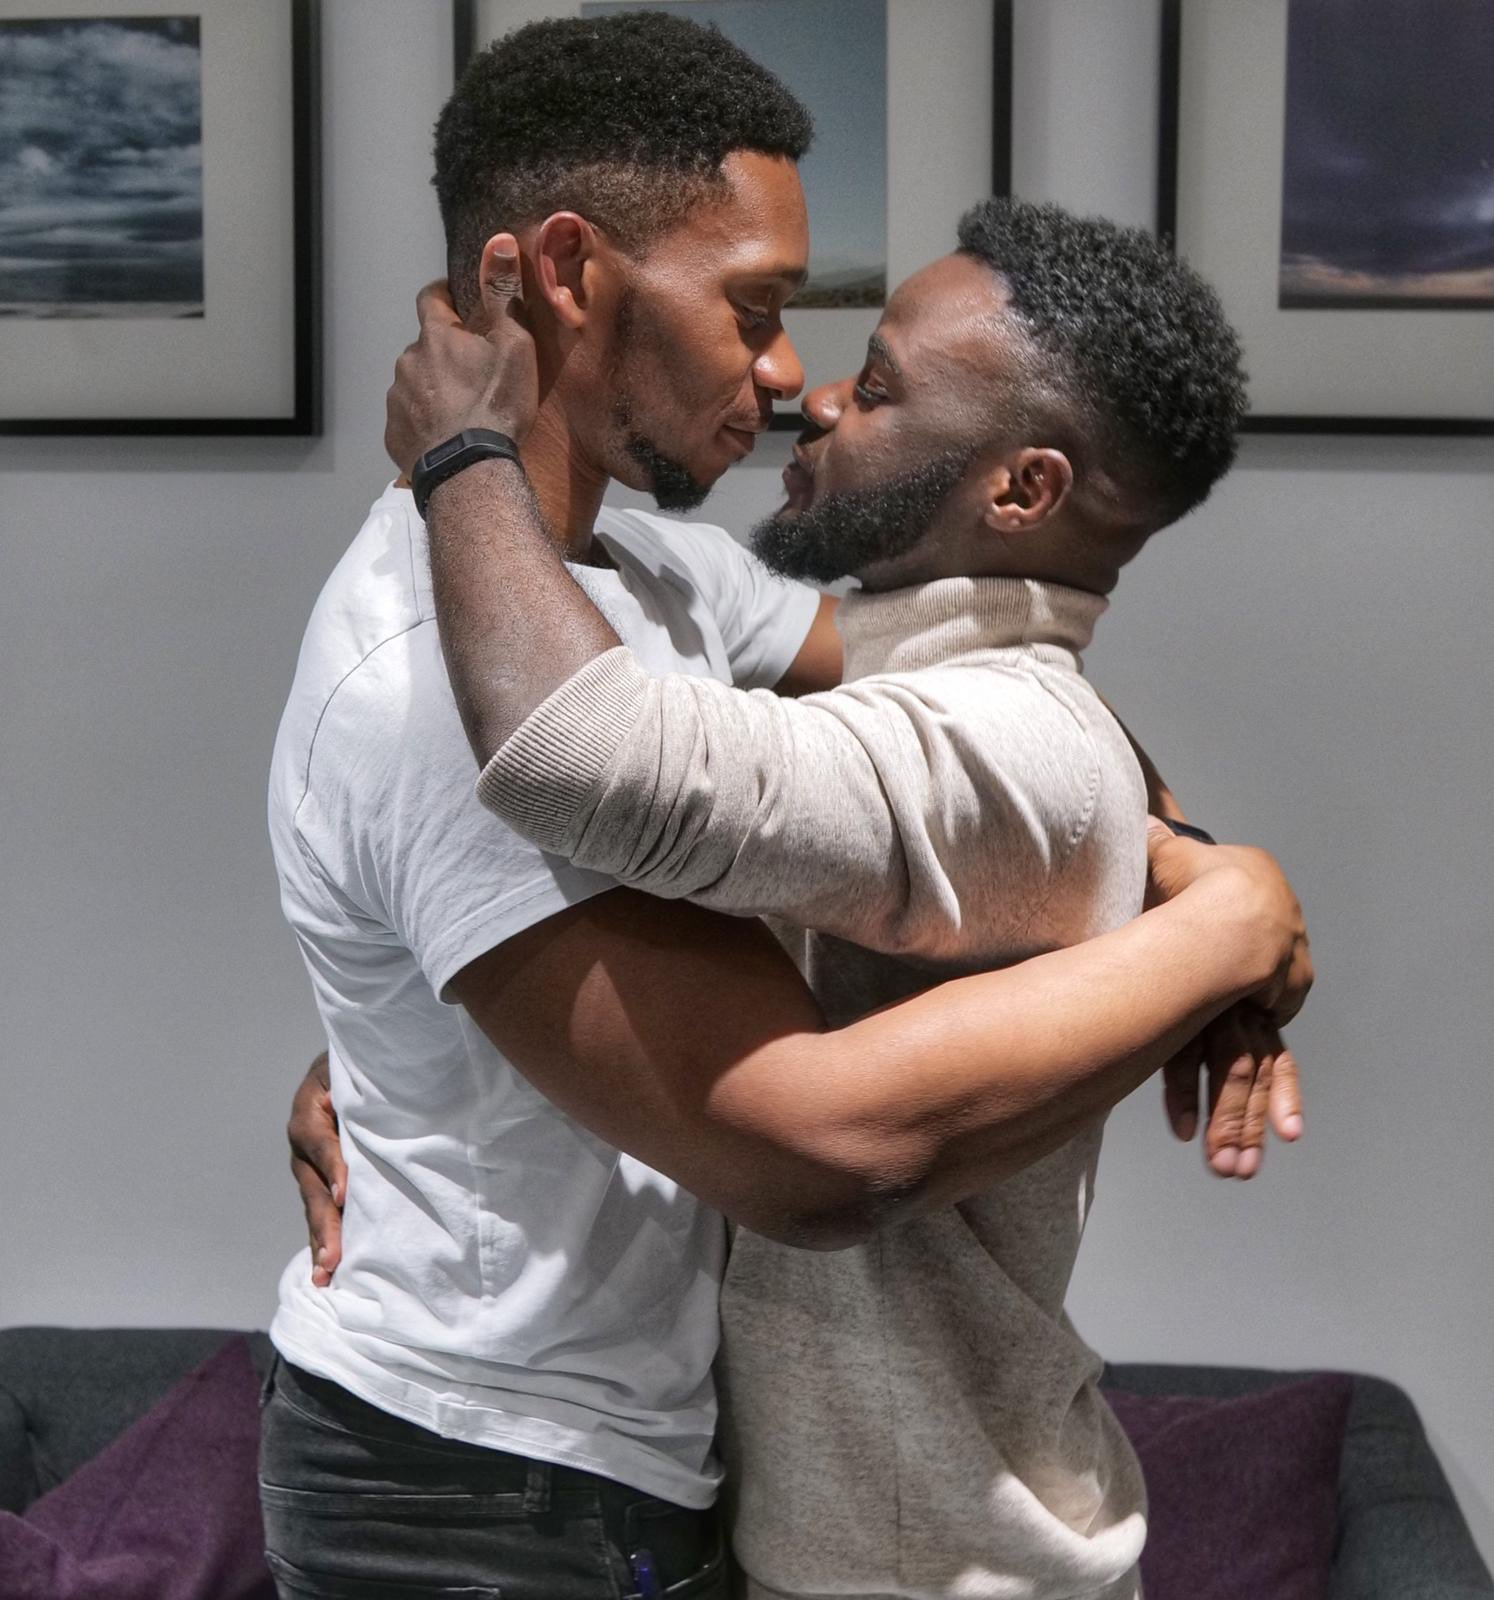 The two Nigerian gay men